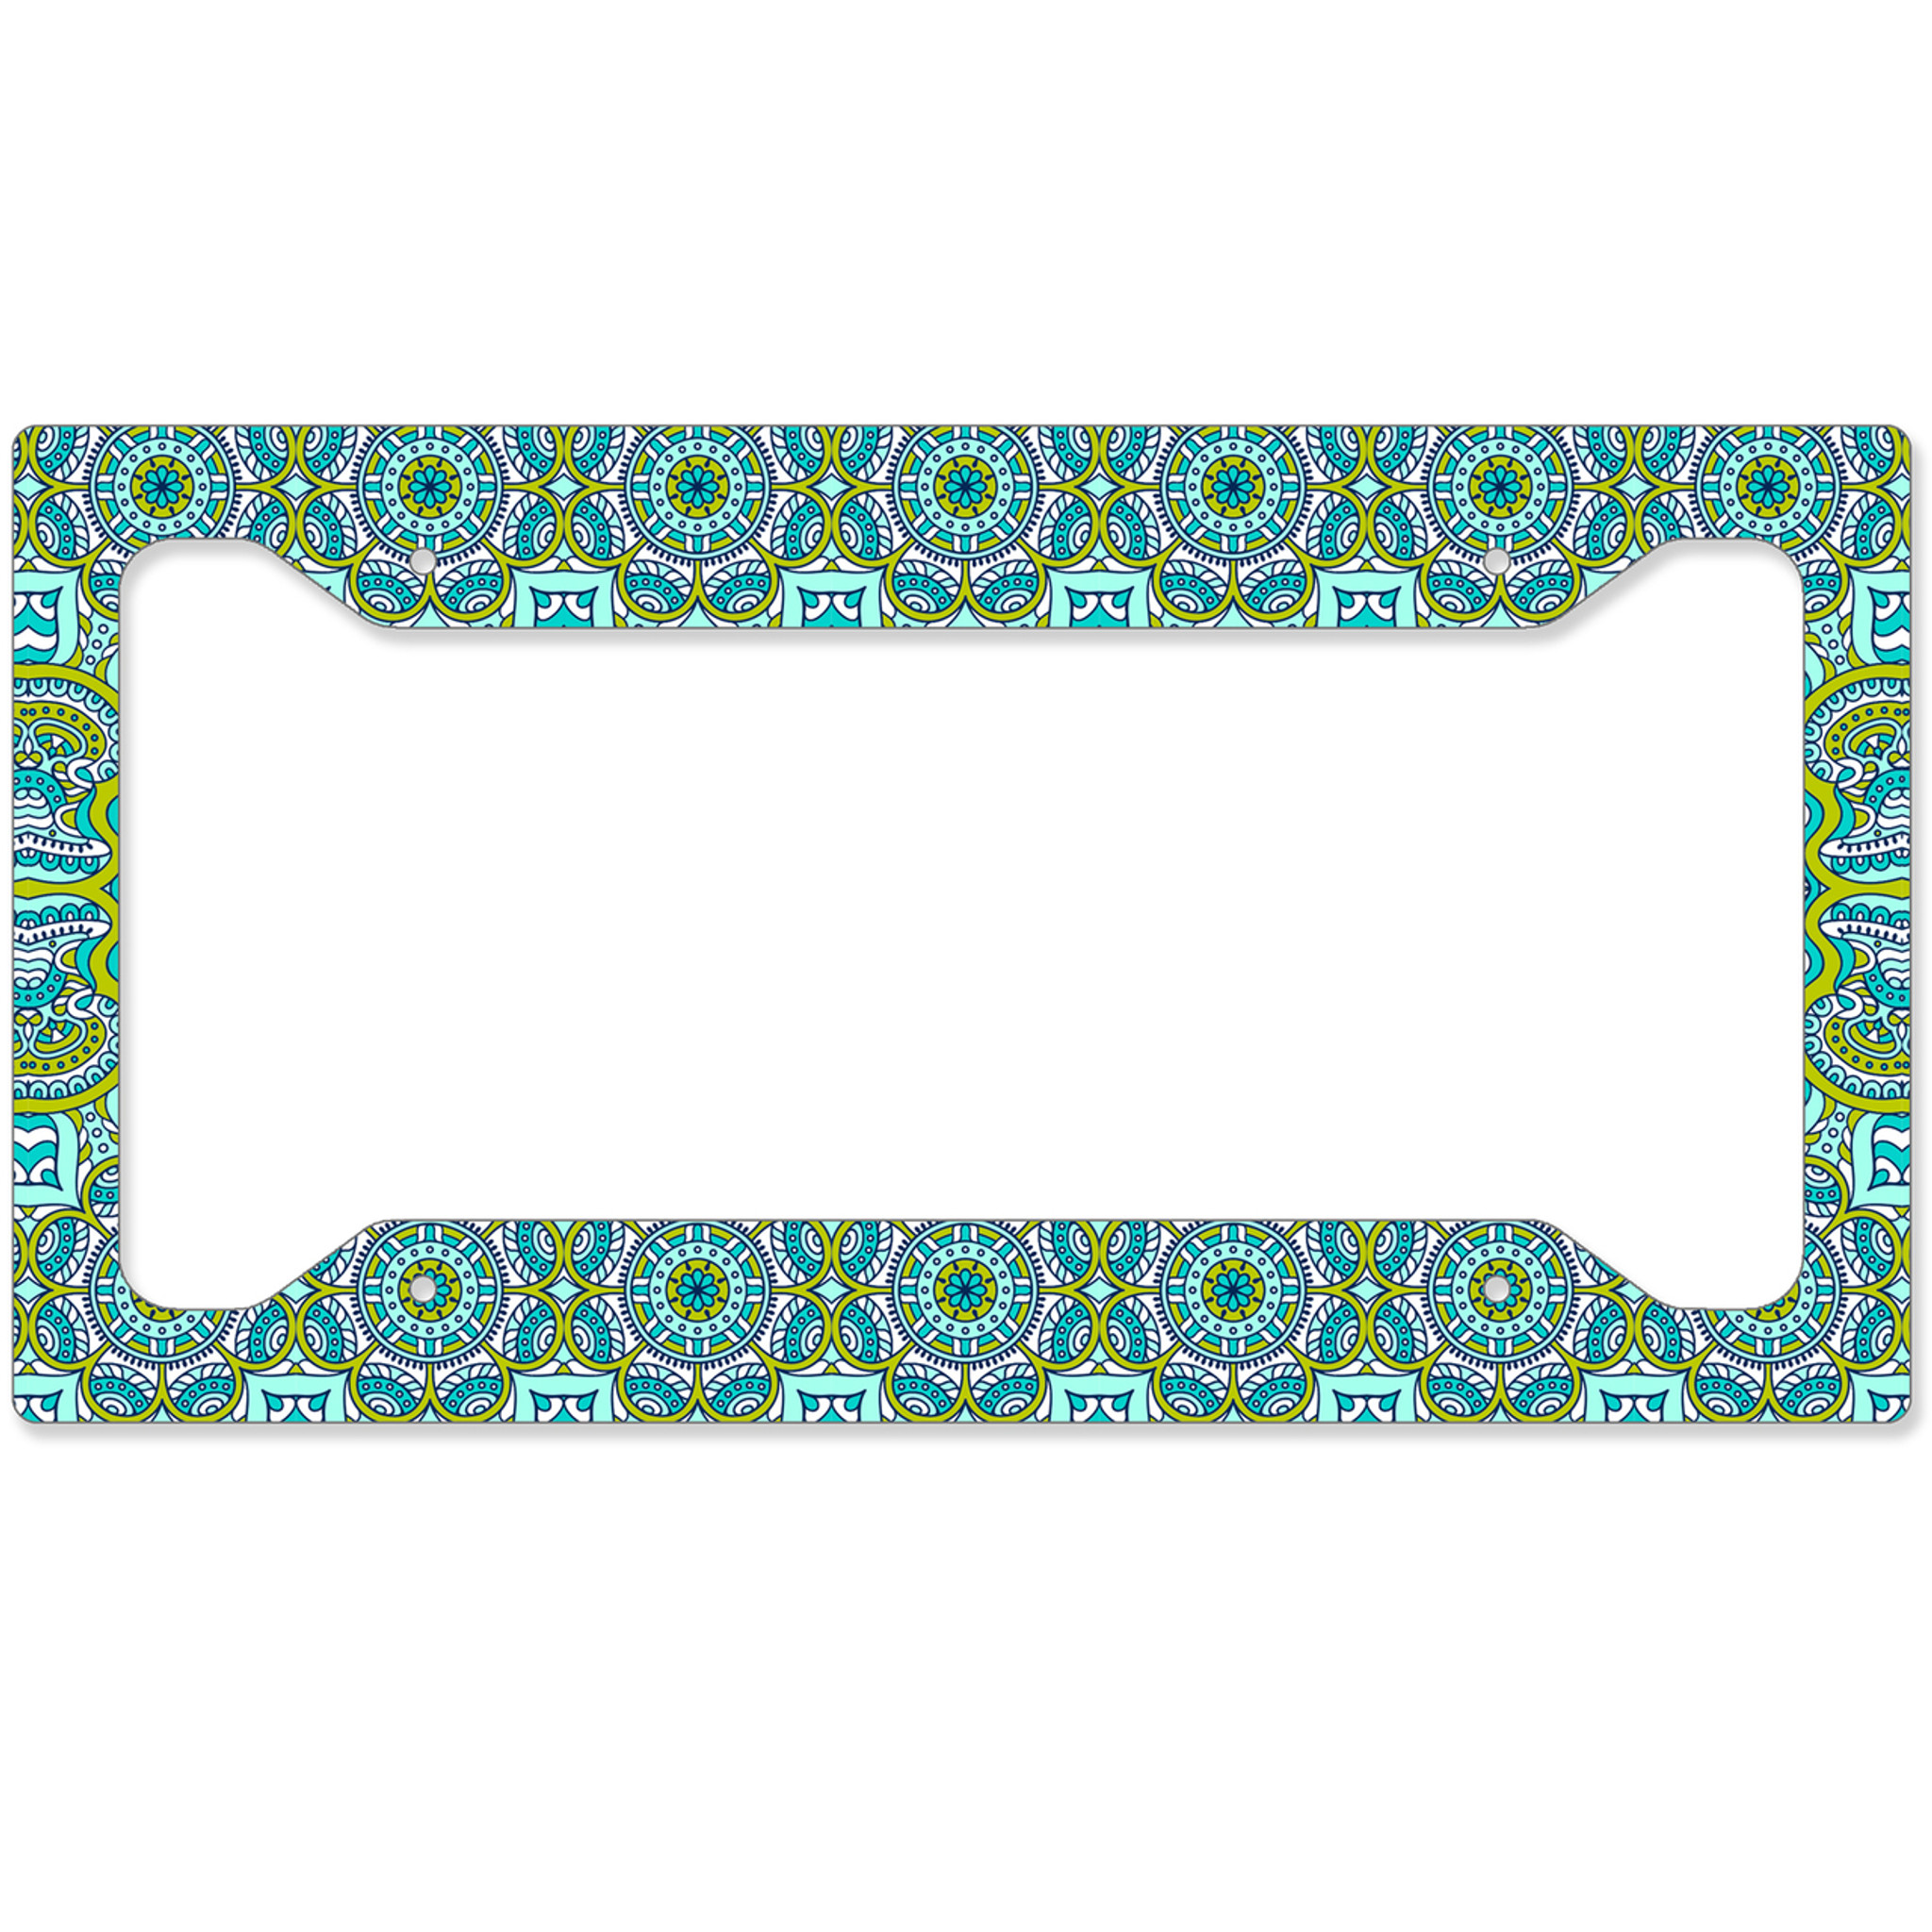 Flower Shop Near Me » flower license plate frame | Flower Shop